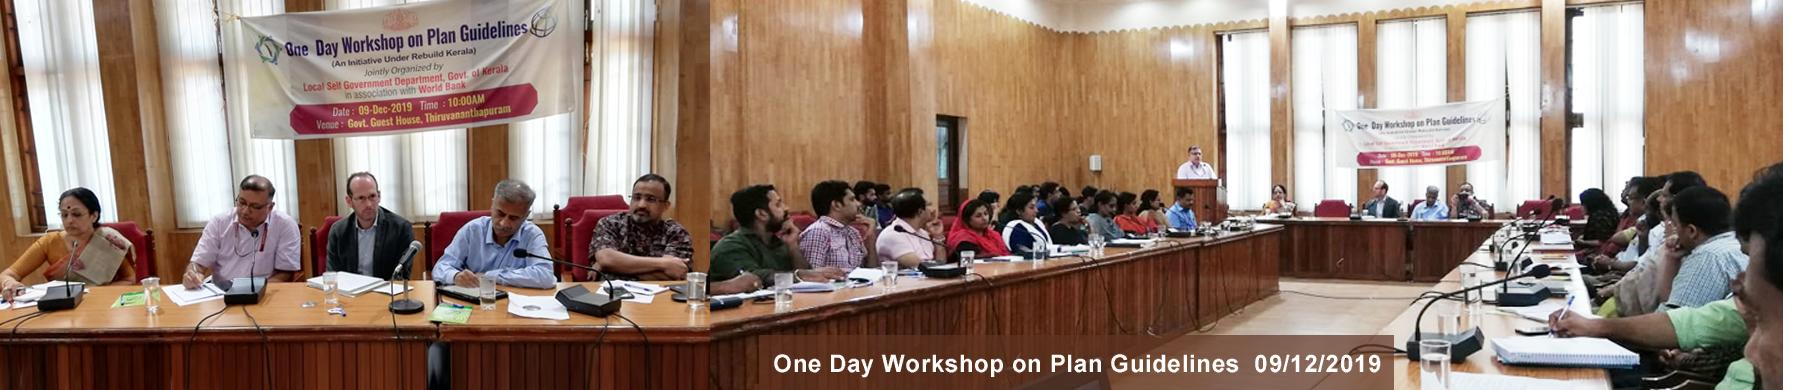 One Day Workshop on Plan Guidelines -09/Dec/2019